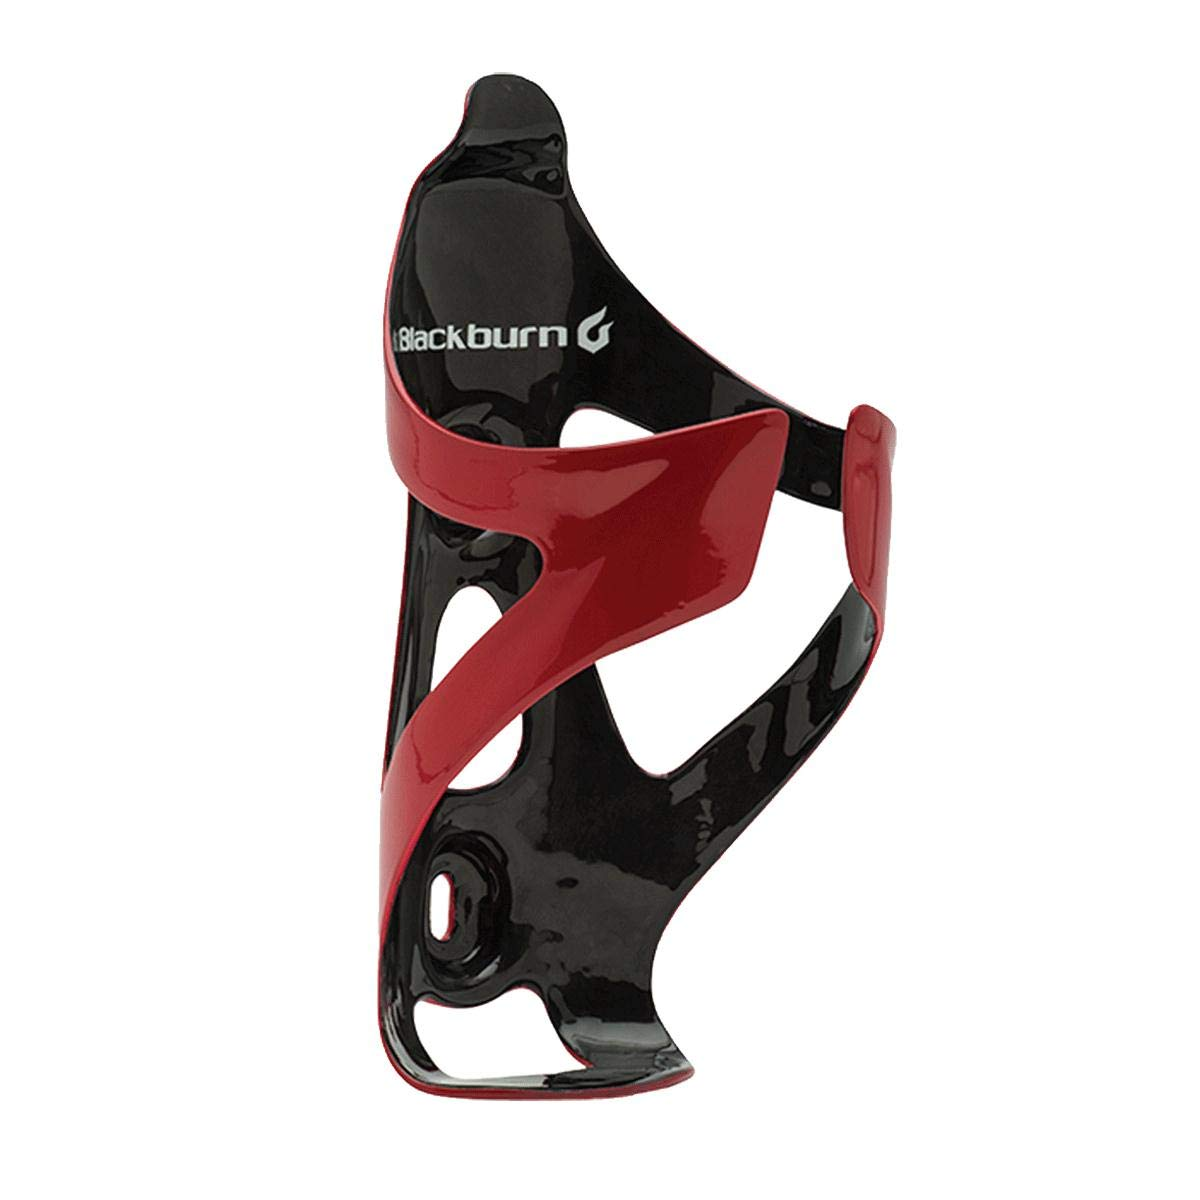 Blackburn Camber UD Carbon Cage Gloss Red/Black, One Size by Blackburn